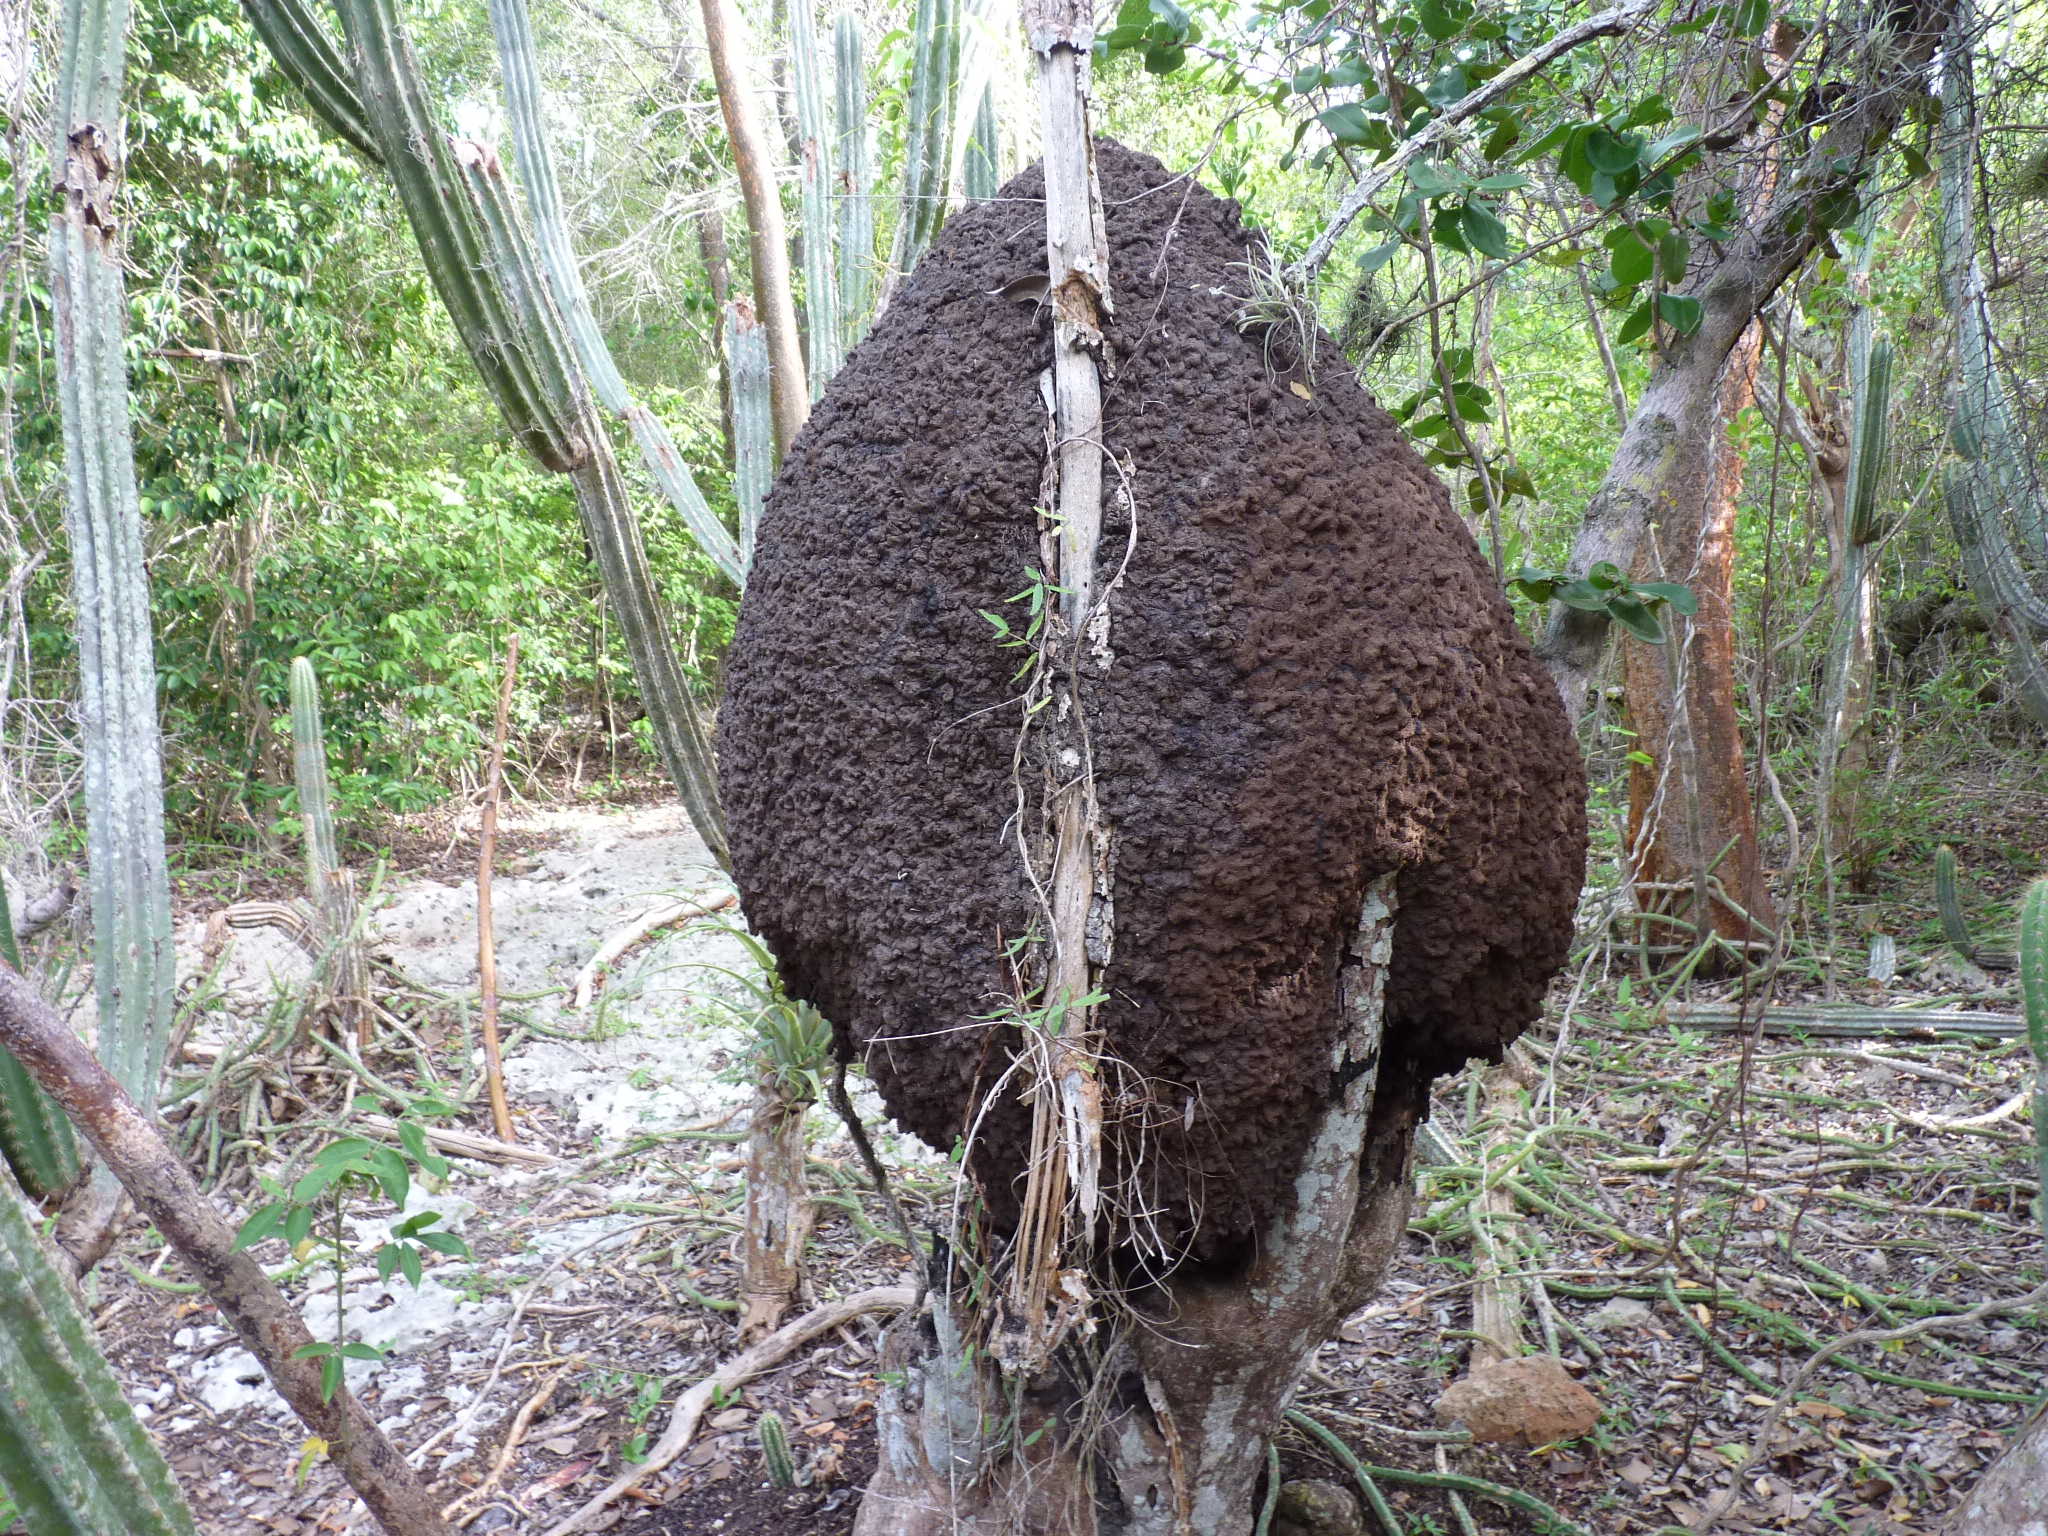 How termites look like